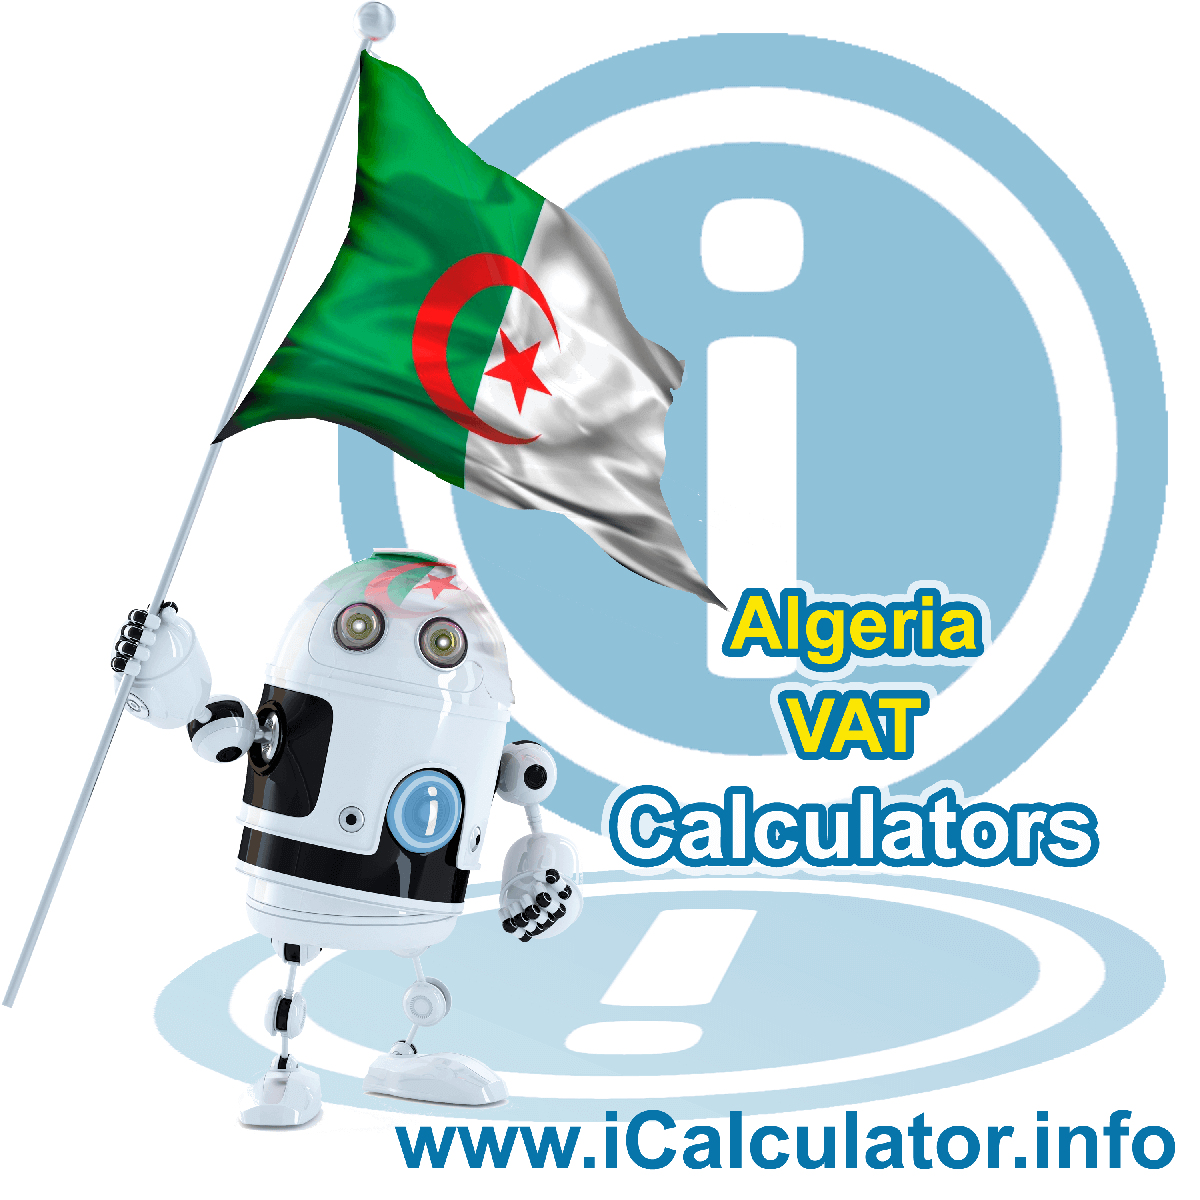 Algeria VAT Calculator. This image shows the Algeria flag and information relating to the VAT formula used for calculating Value Added Tax in Algeria using the Algeria VAT Calculator in 2020